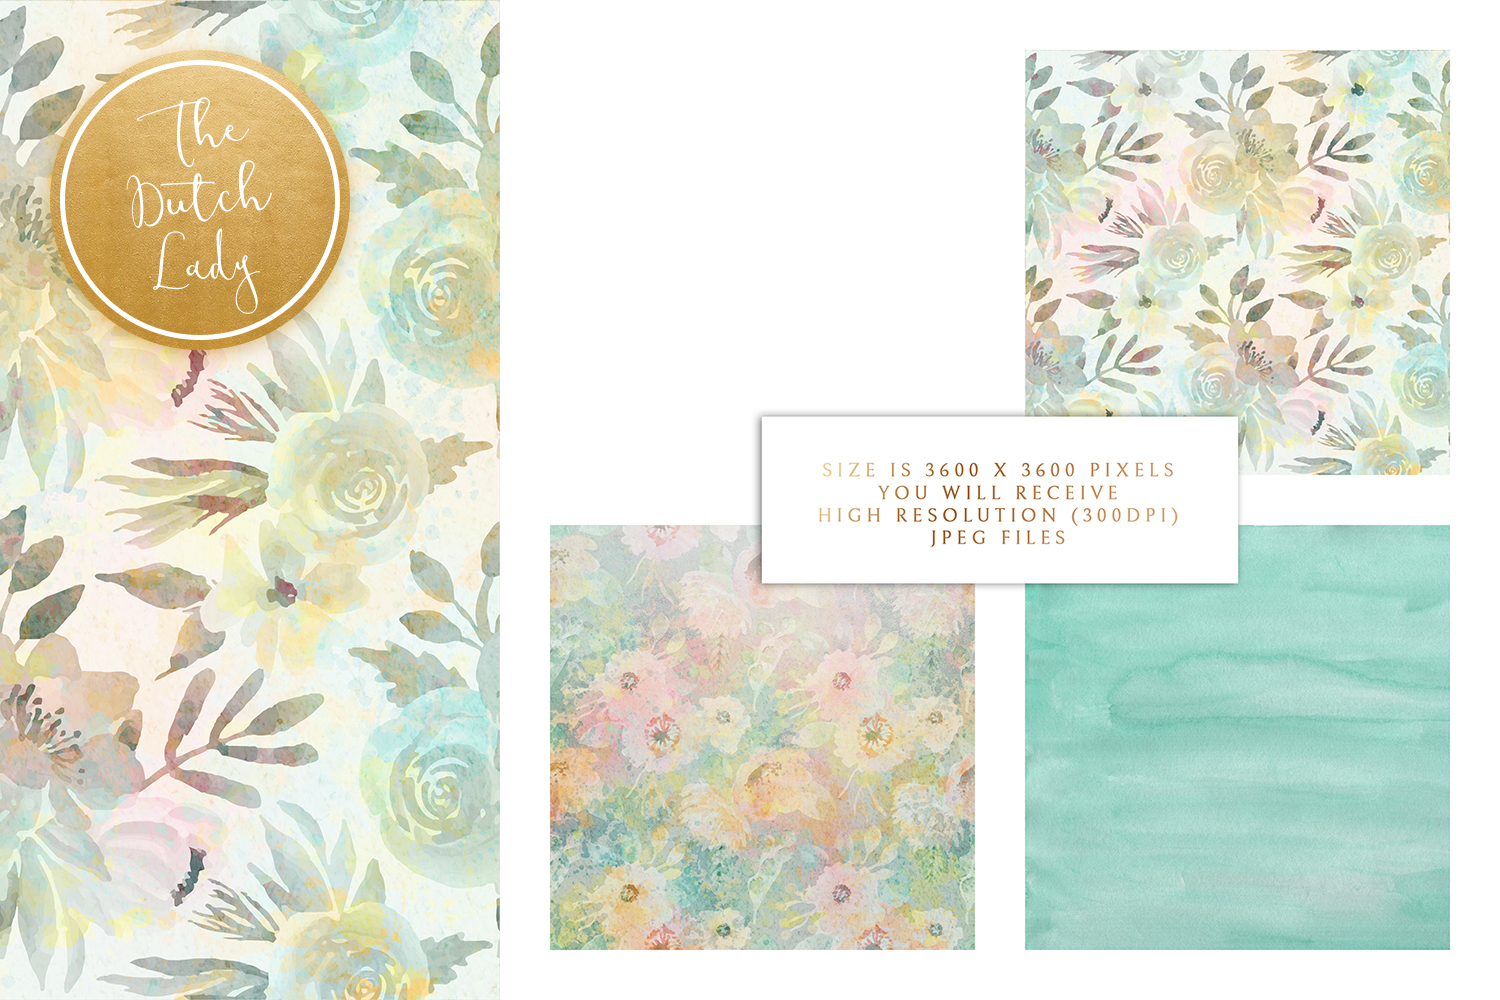 Floral Backgrounds & Paper Designs - Michelle example image 3